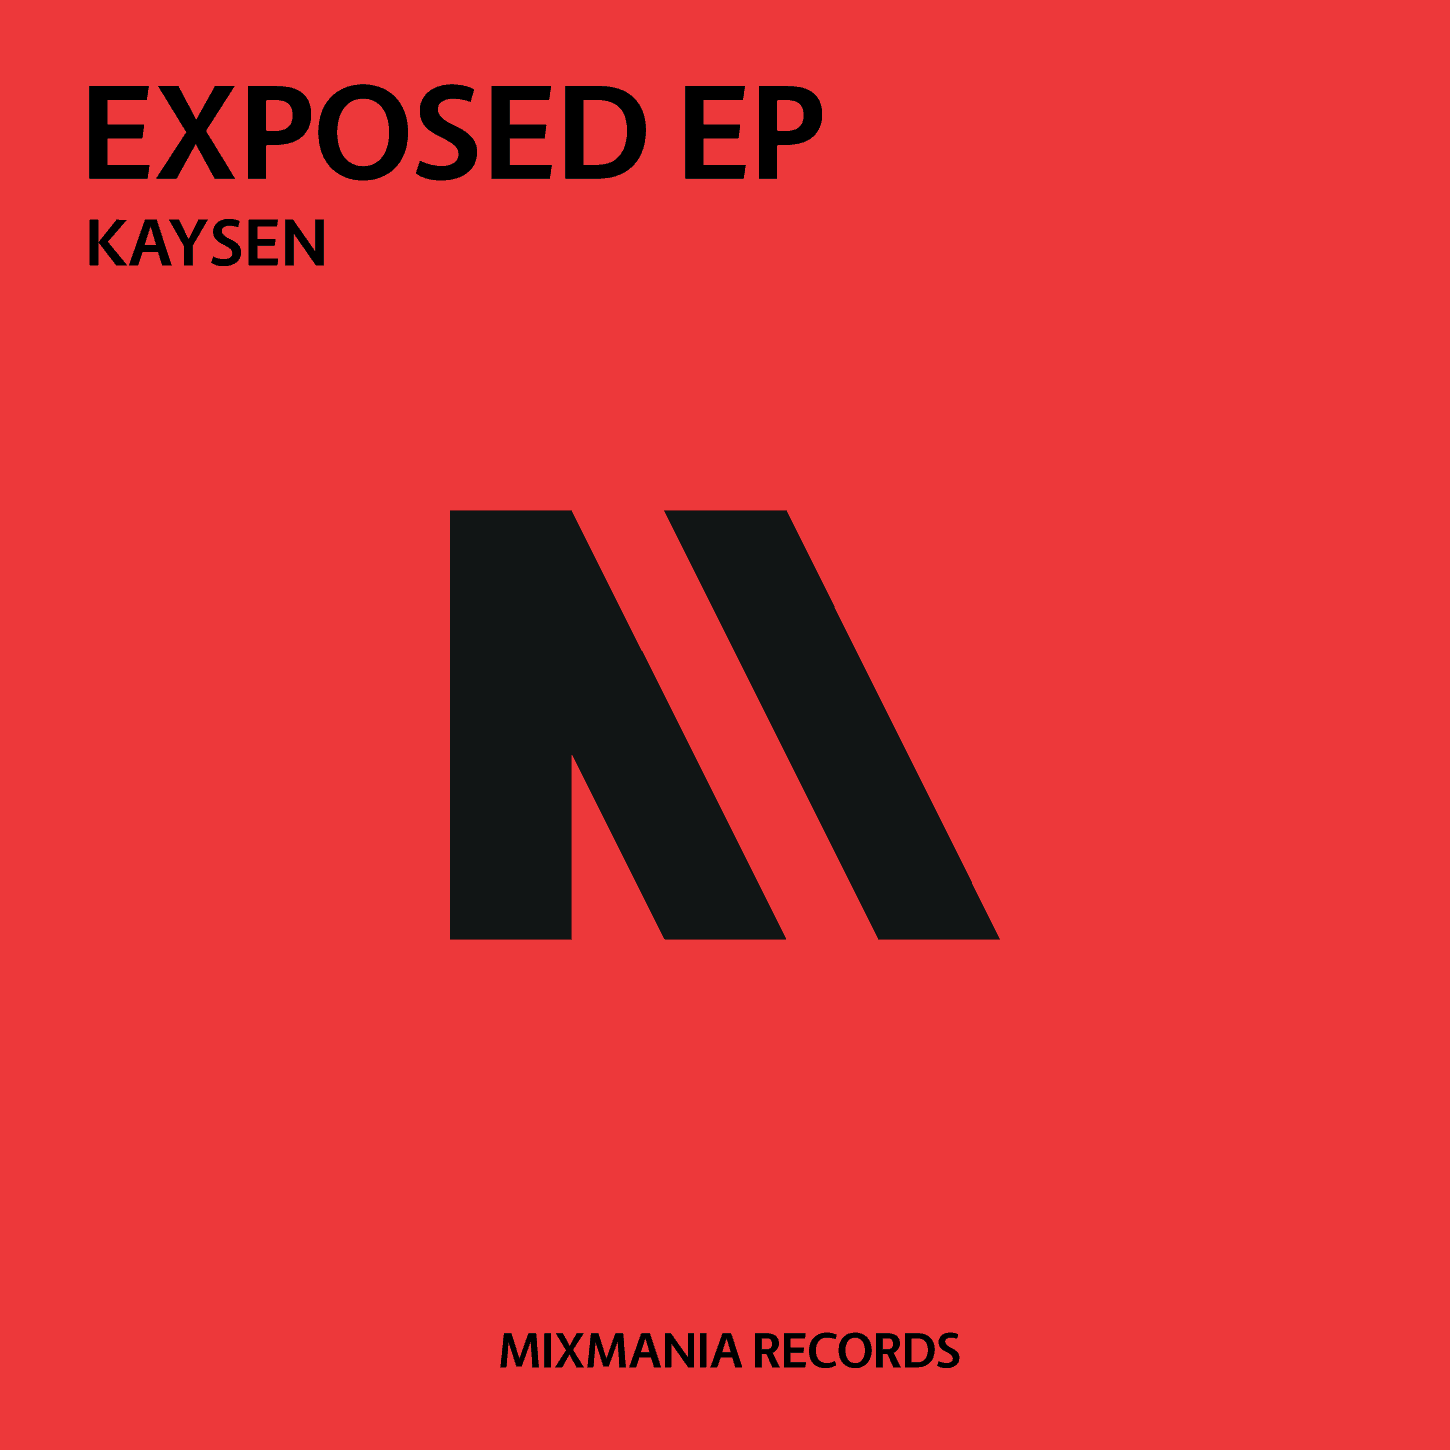 Exposed EP By KAYSEN Art Work